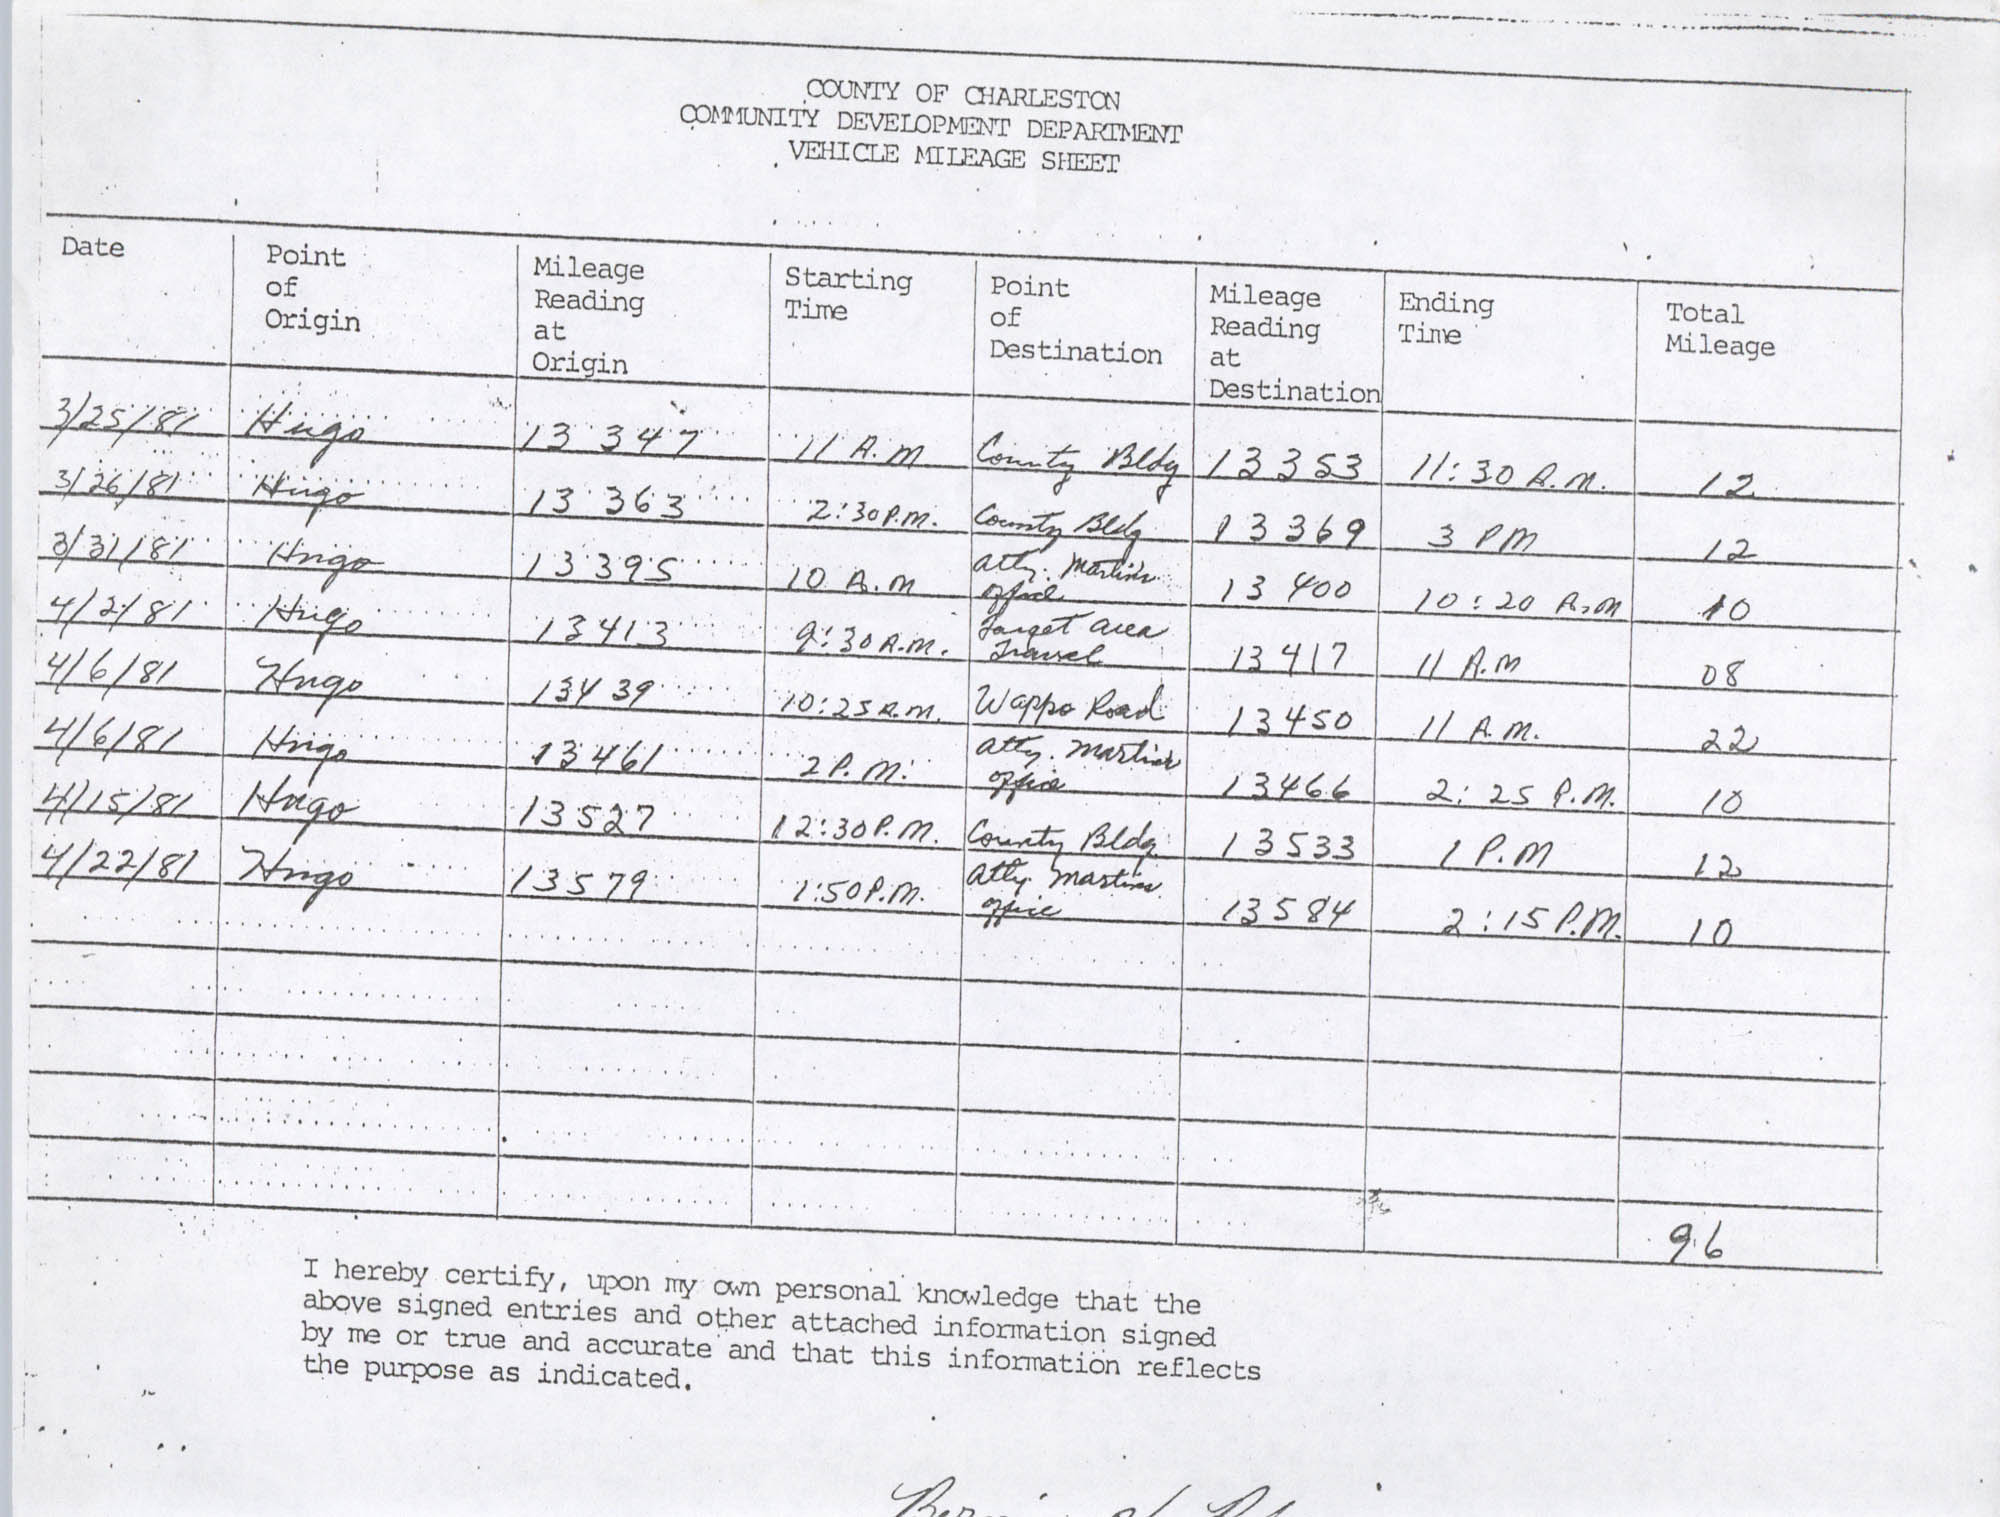 Community Development Department Vehicle Mileage Sheet, Page 15